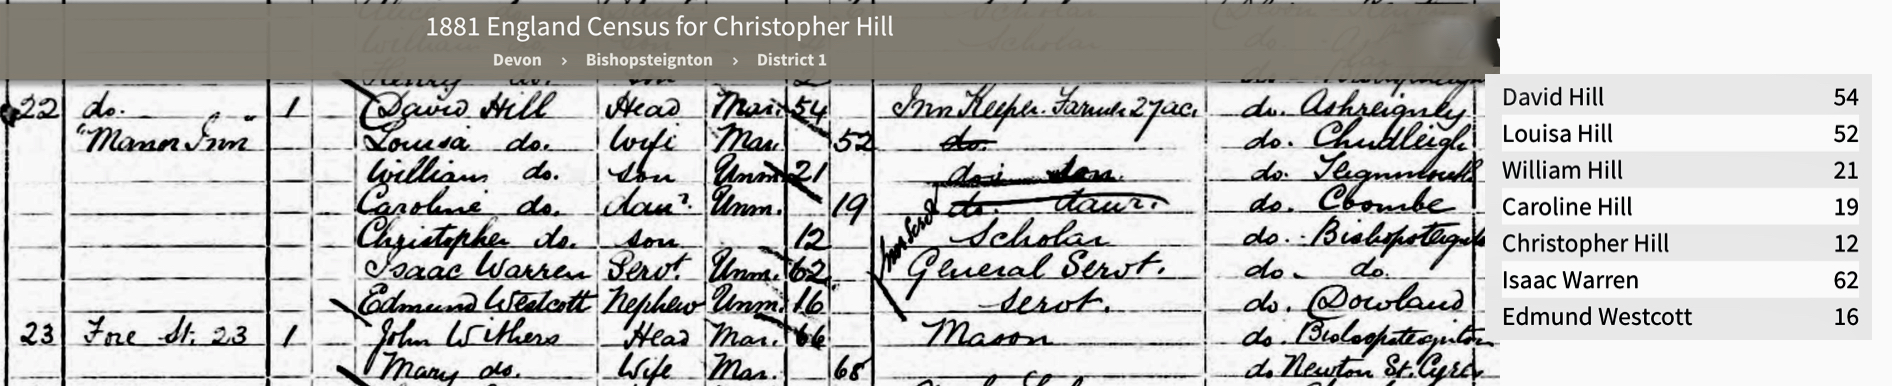 1881 Census Manor Inn, Hill Family